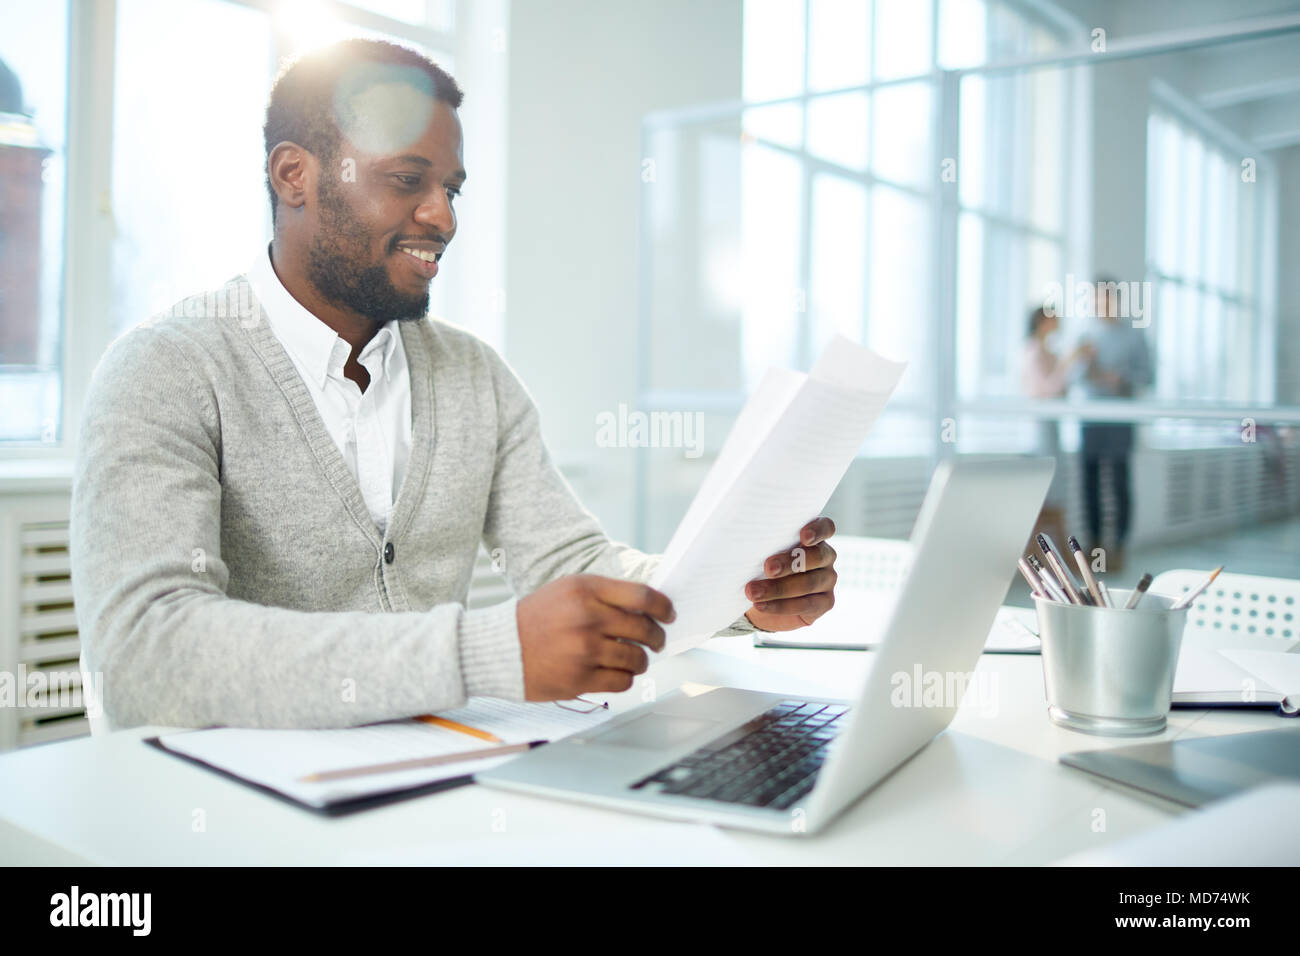 Waist-up portrait of cheerful African American businessman studying document while sitting at desk of modern open plan office, lens flare - Stock Image